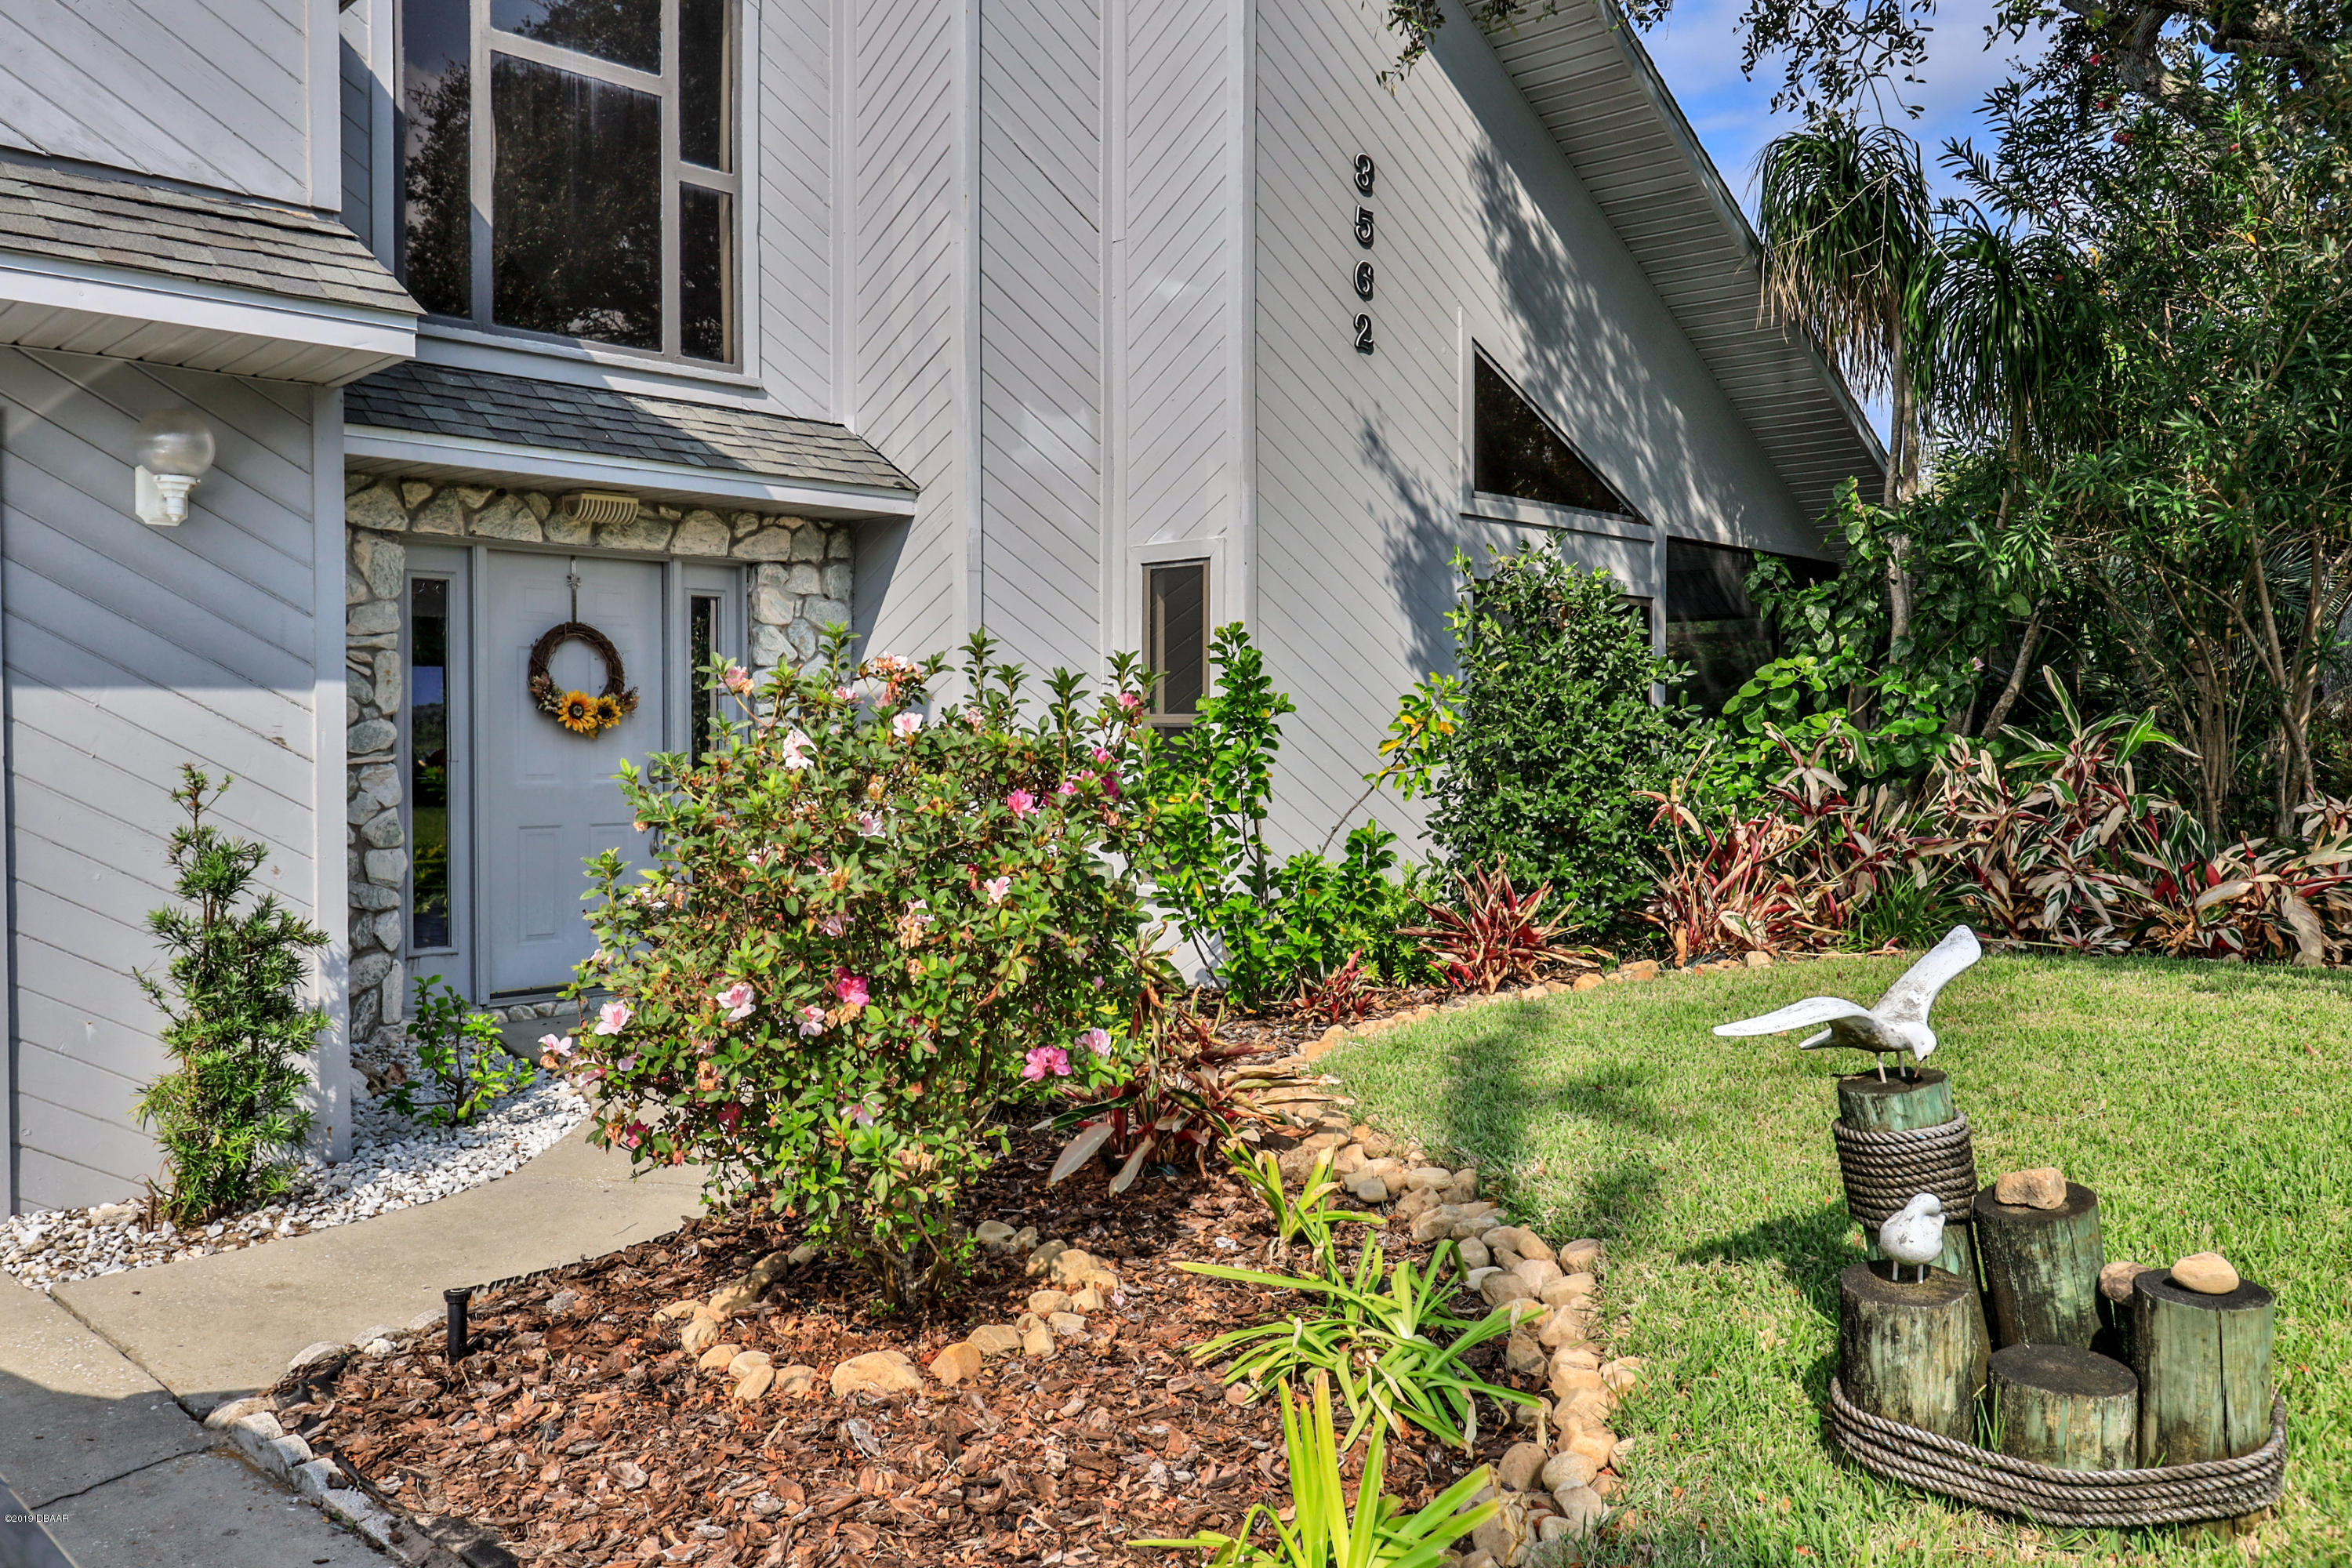 3562 John Anderson Drive, Ormond-By-The-Sea, Florida